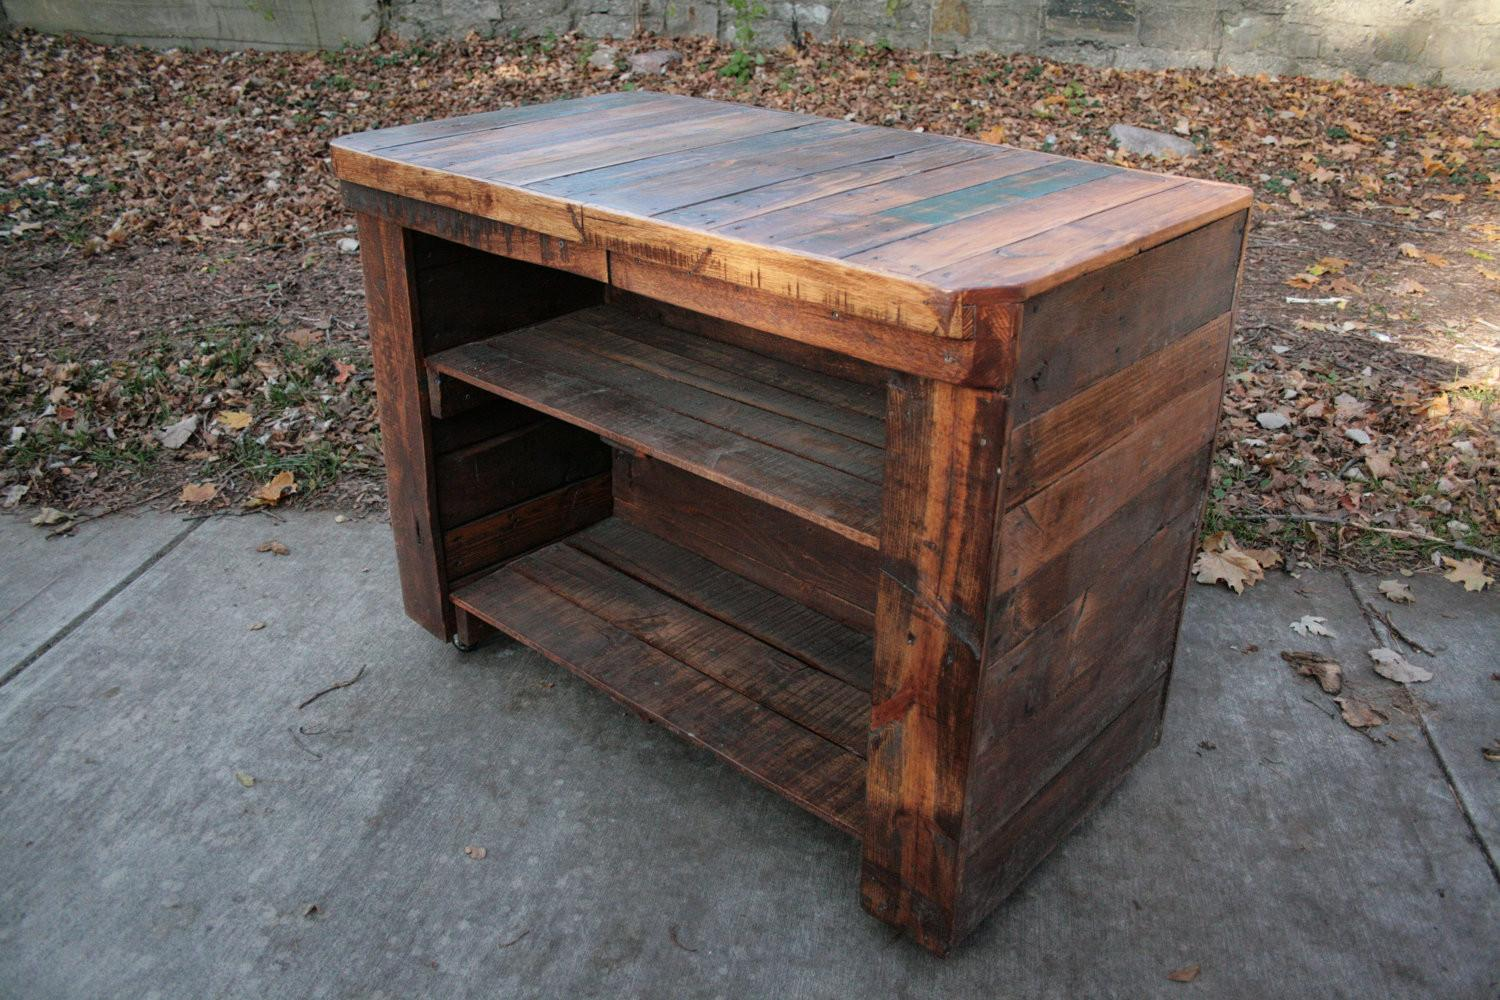 Unique Cubical Wood Pallet Nightstand Ideas